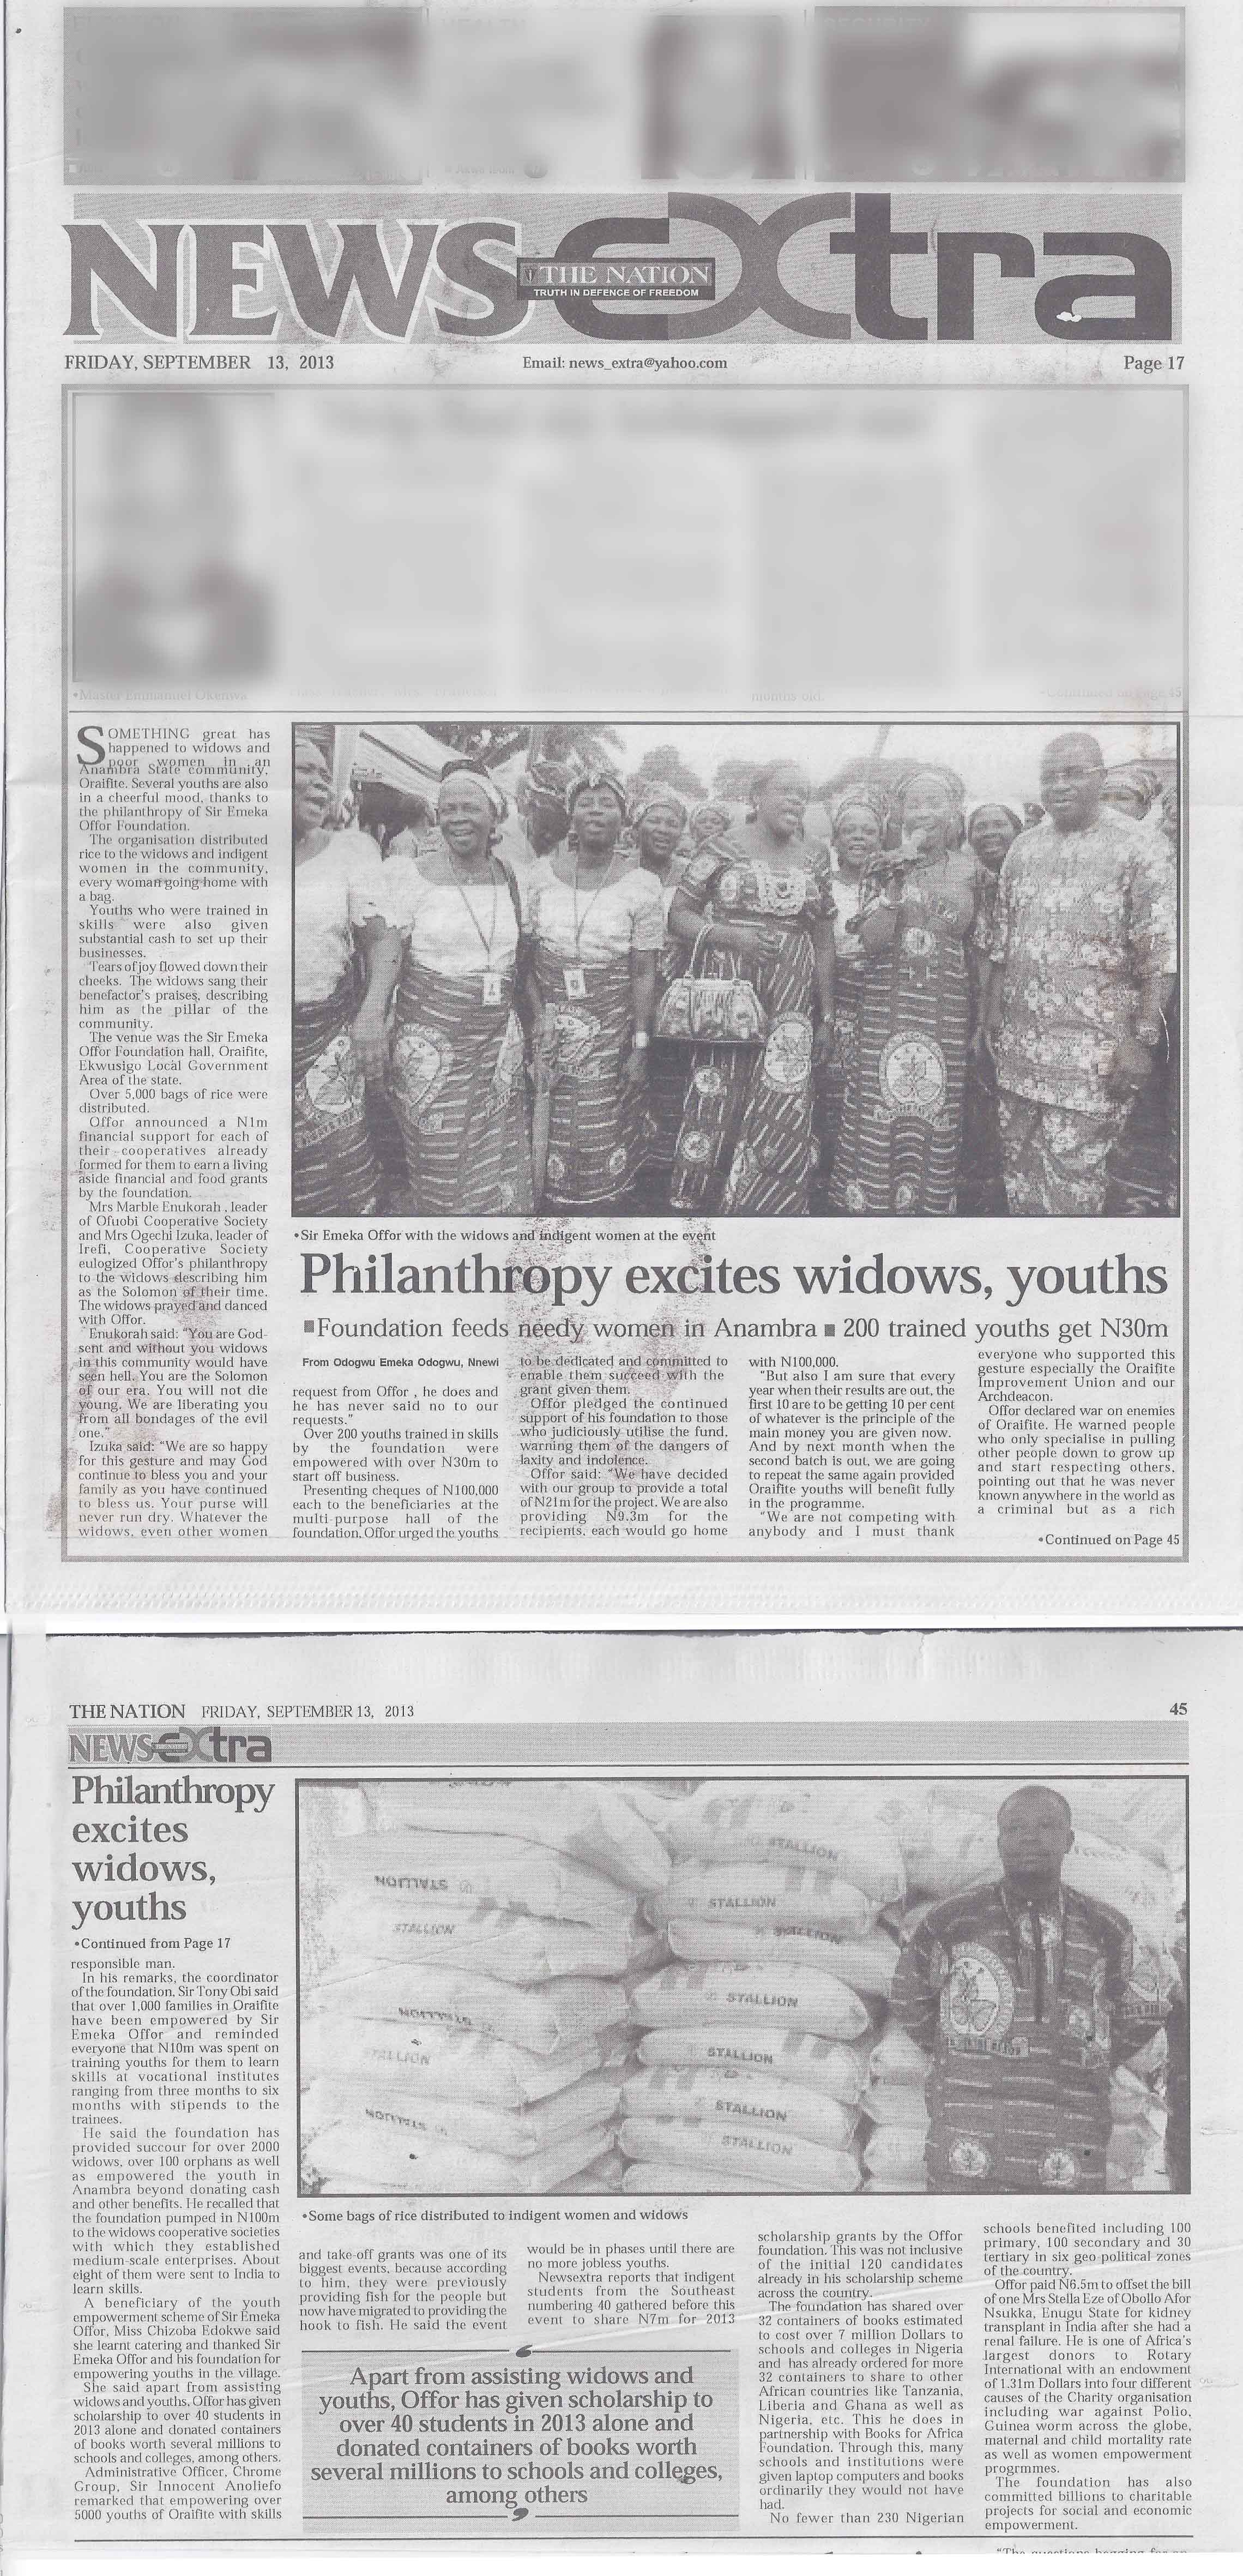 The Nation: Philanthropy Excites Widows, Youths